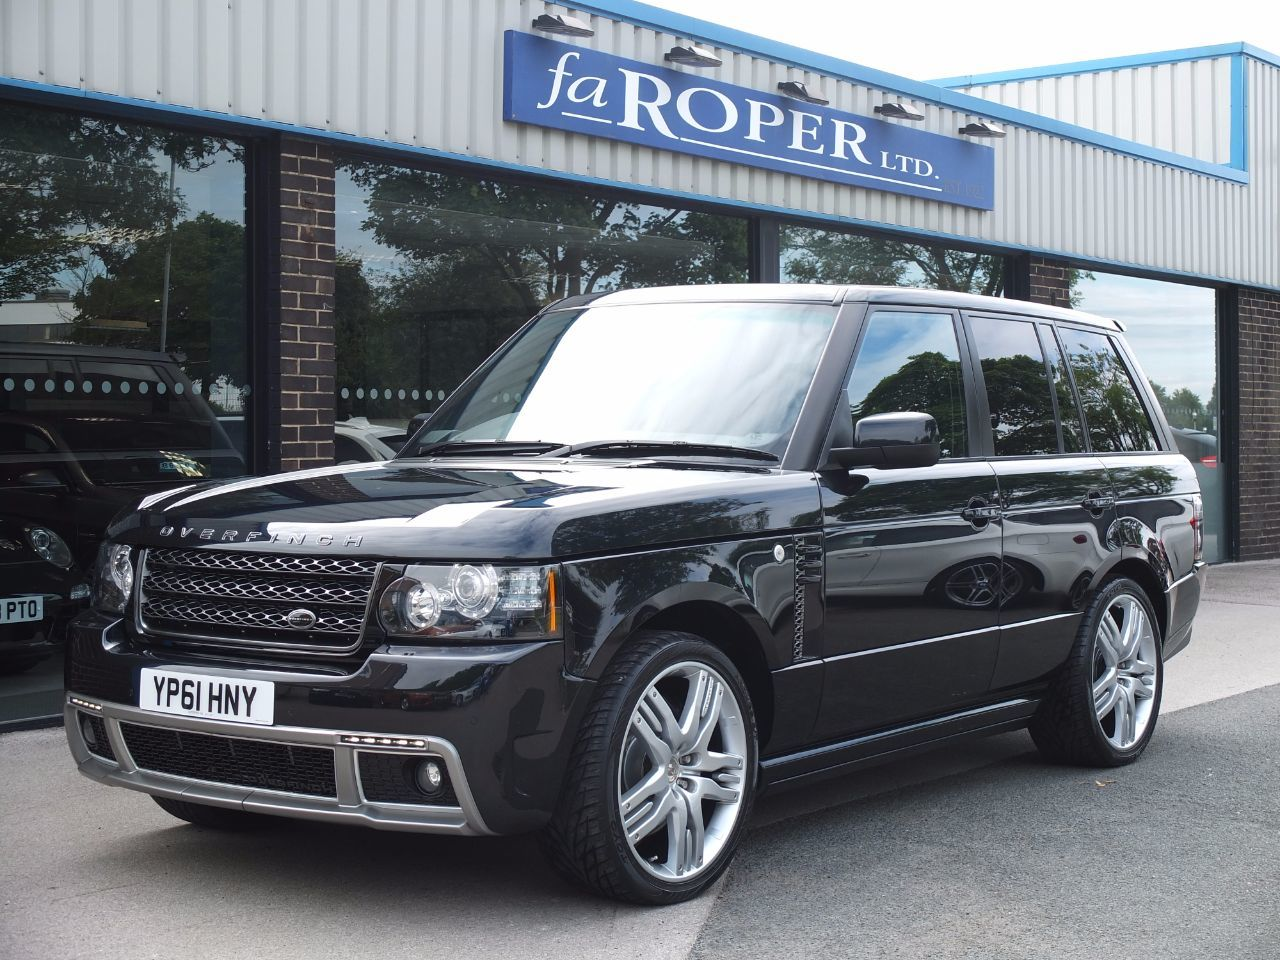 Land Rover Range Rover 4.4 TDV8 Vogue OVERFINCH GT AERO Estate Diesel Santorini Black MetallicLand Rover Range Rover 4.4 TDV8 Vogue OVERFINCH GT AERO Estate Diesel Santorini Black Metallic at fa Roper Ltd Bradford